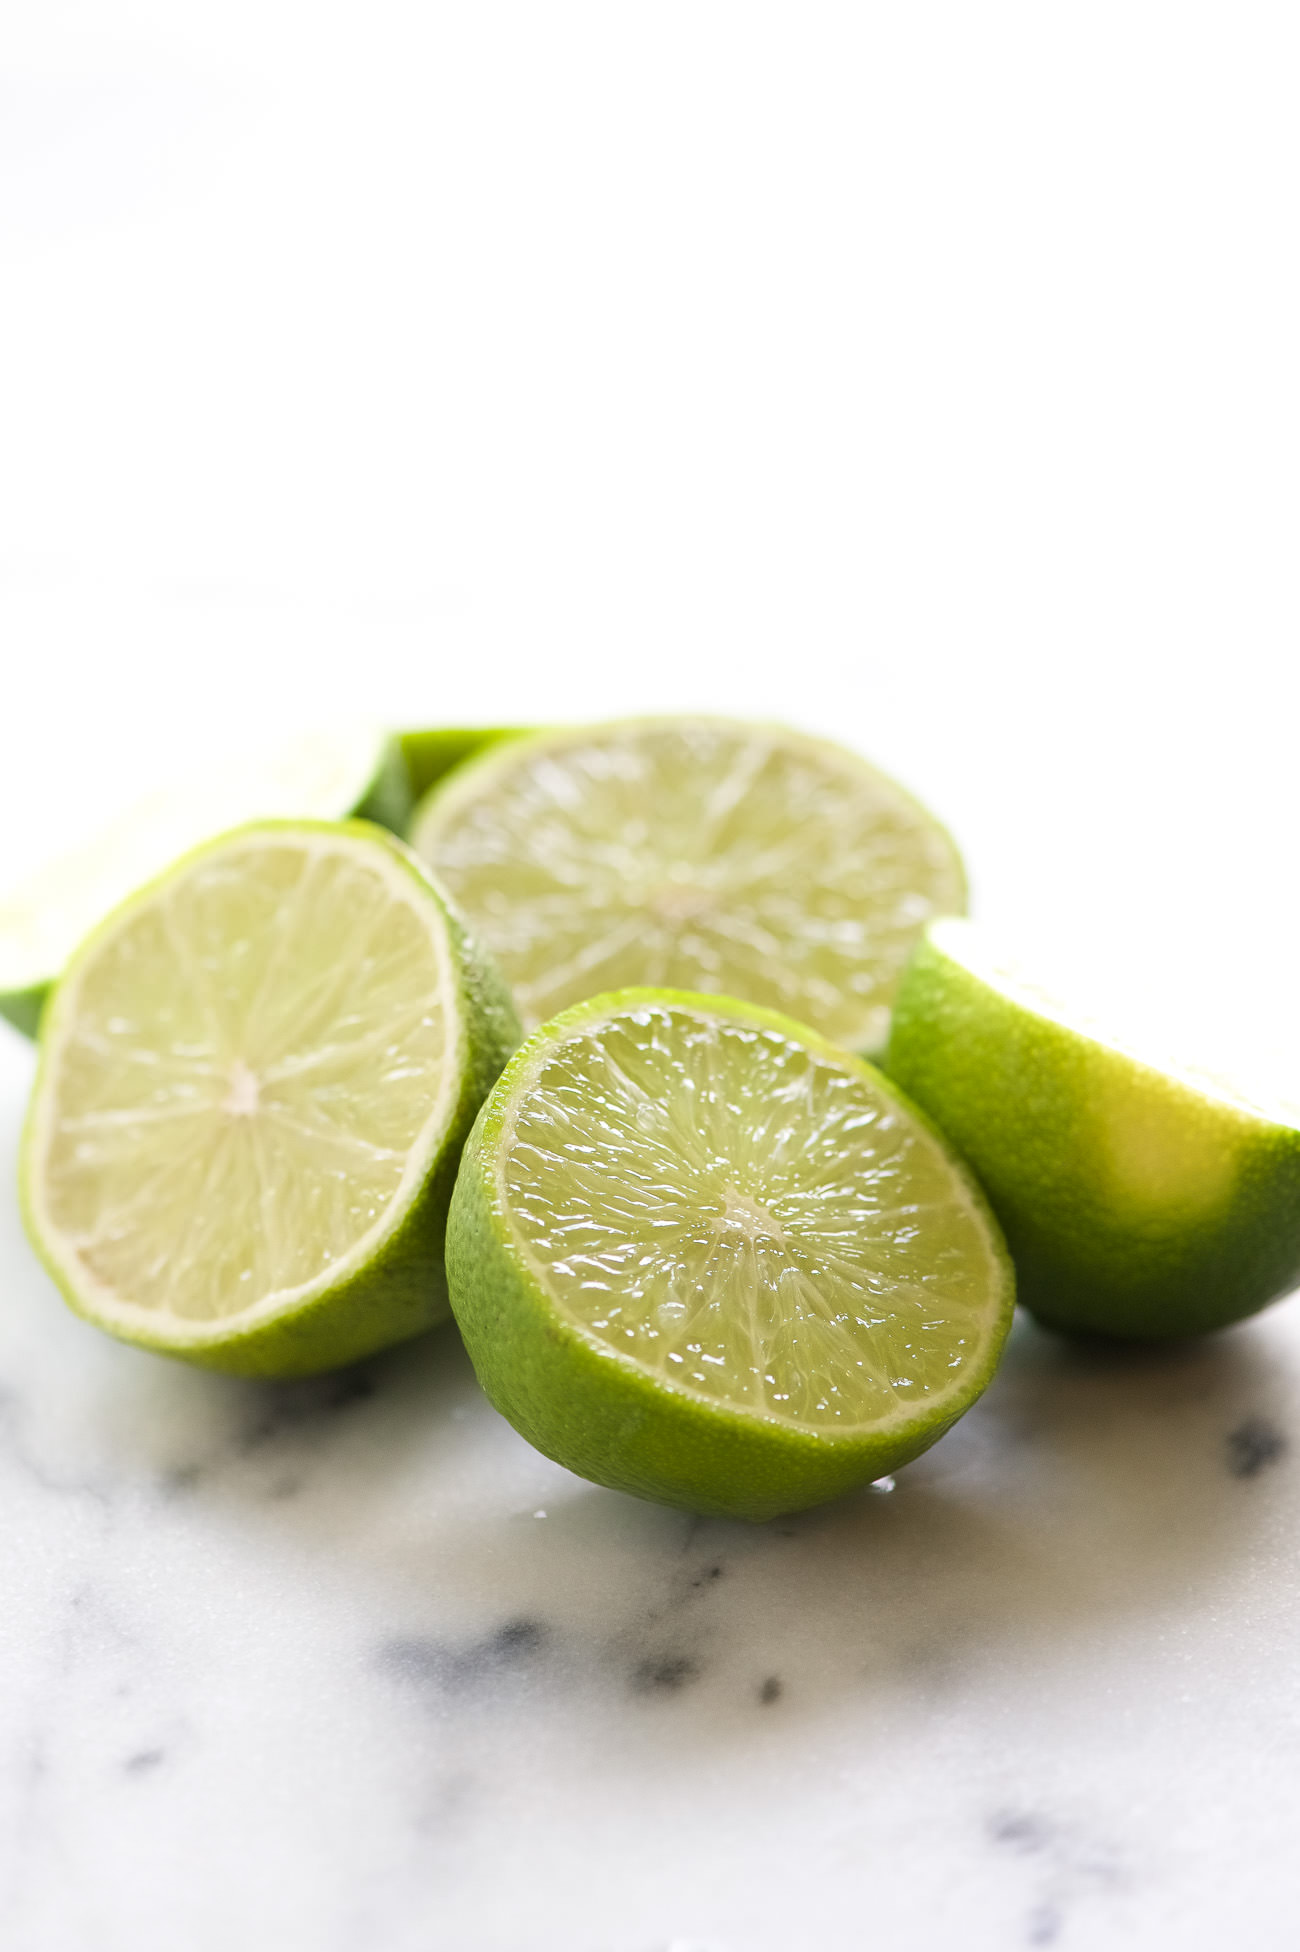 This is the best Spicy Margarita recipe out there! Starts with a base of fresh lime juice, silver tequila and agave then spiced with a bit of jalapeño for a refreshing cocktail!